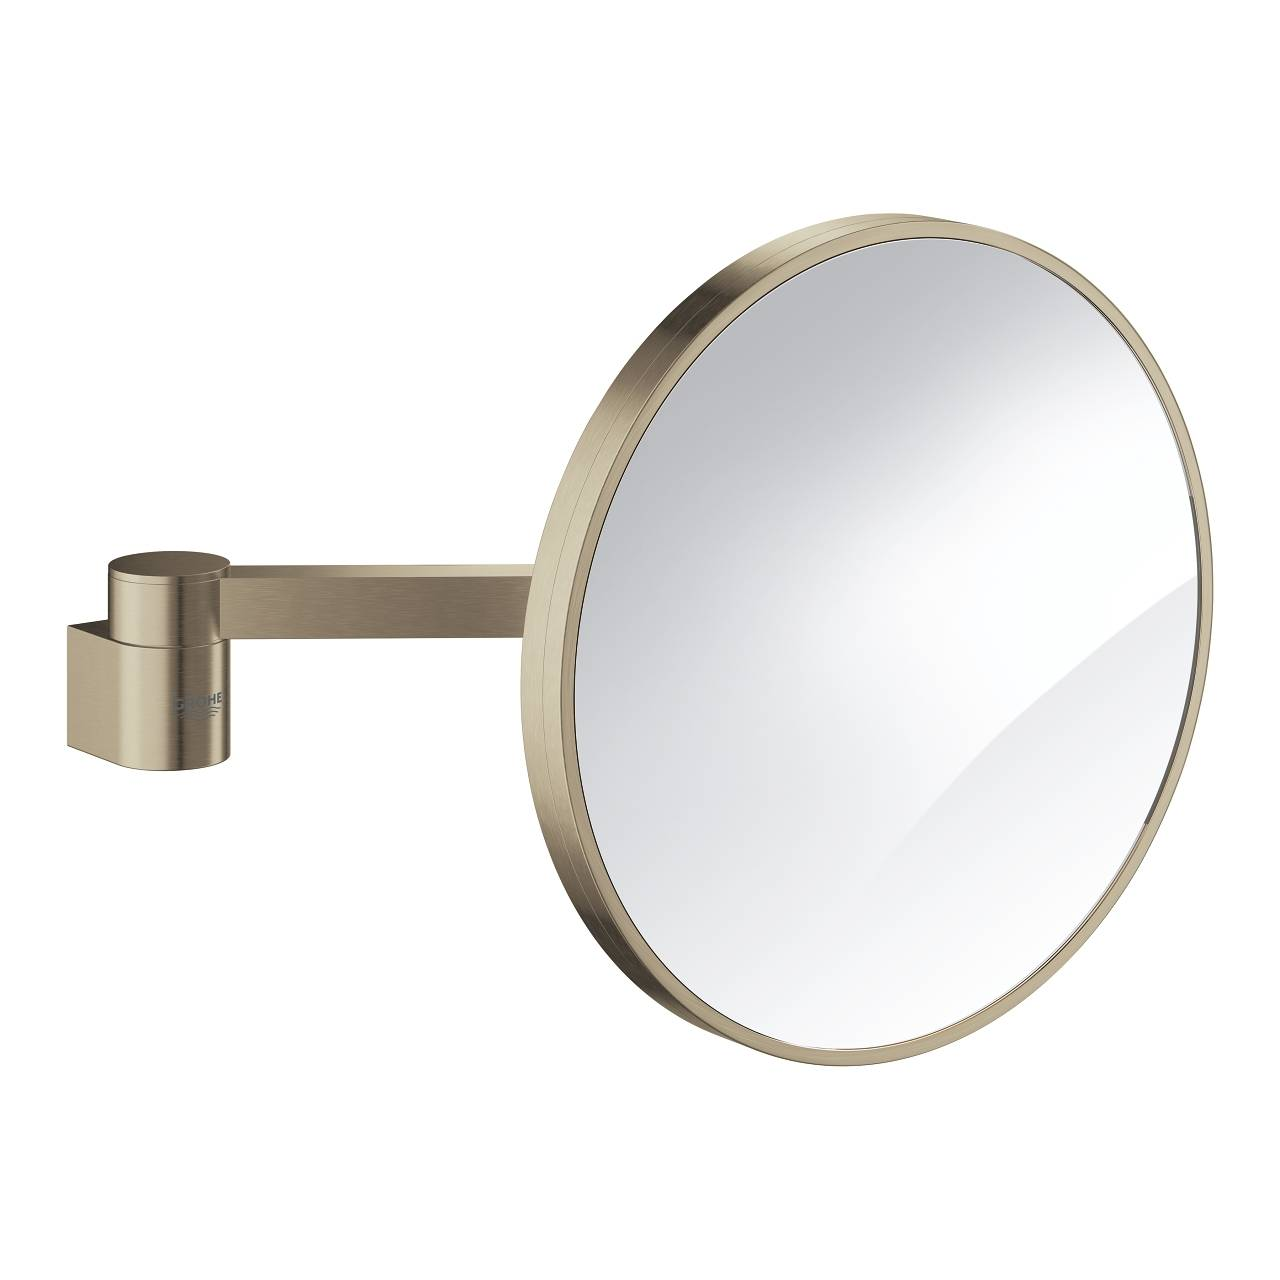 Grohe Selection - Miroir cosmétique mirrored / brushed nickel